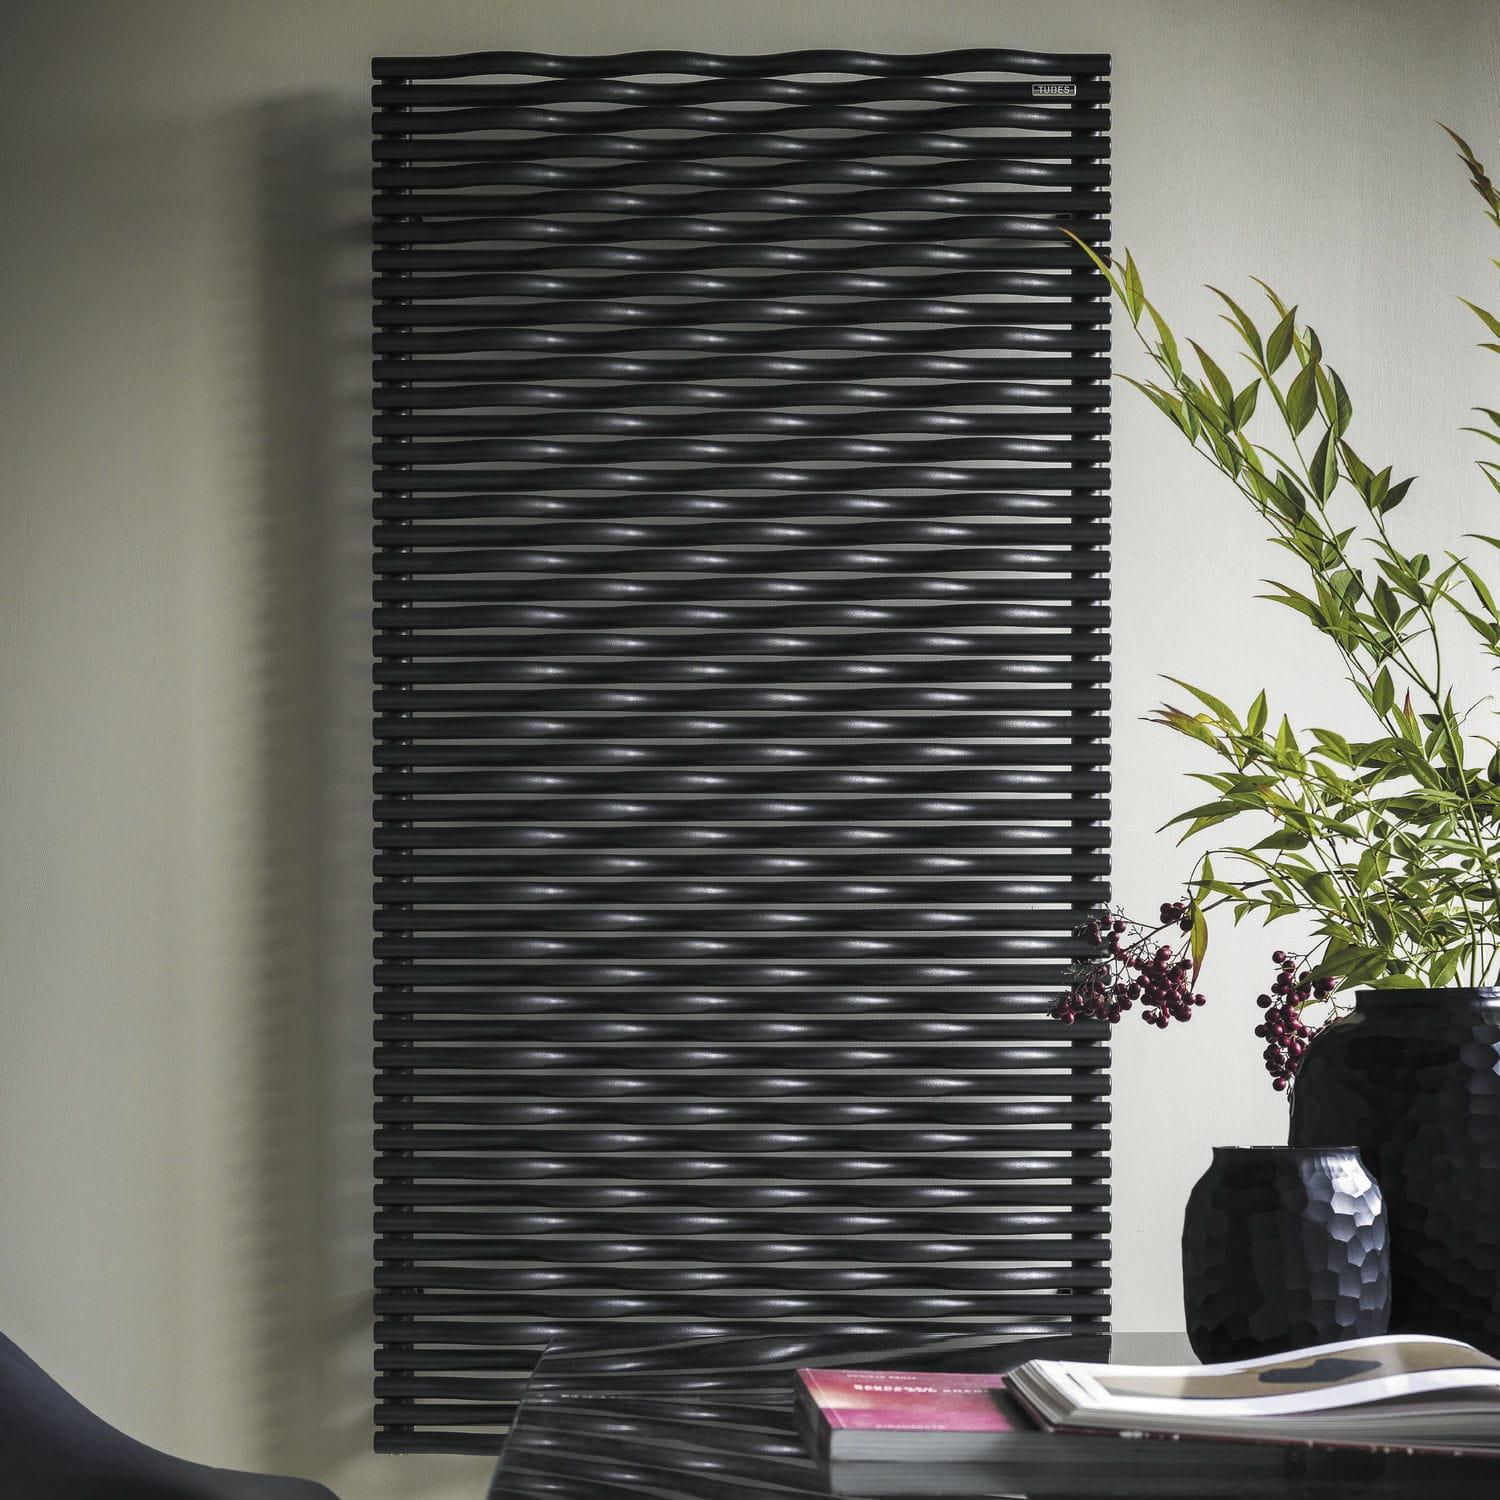 ... Hot water radiator / electric / steel / contemporary ELEMENTS: TRAME by  Stefano Giovannoni TUBES ...